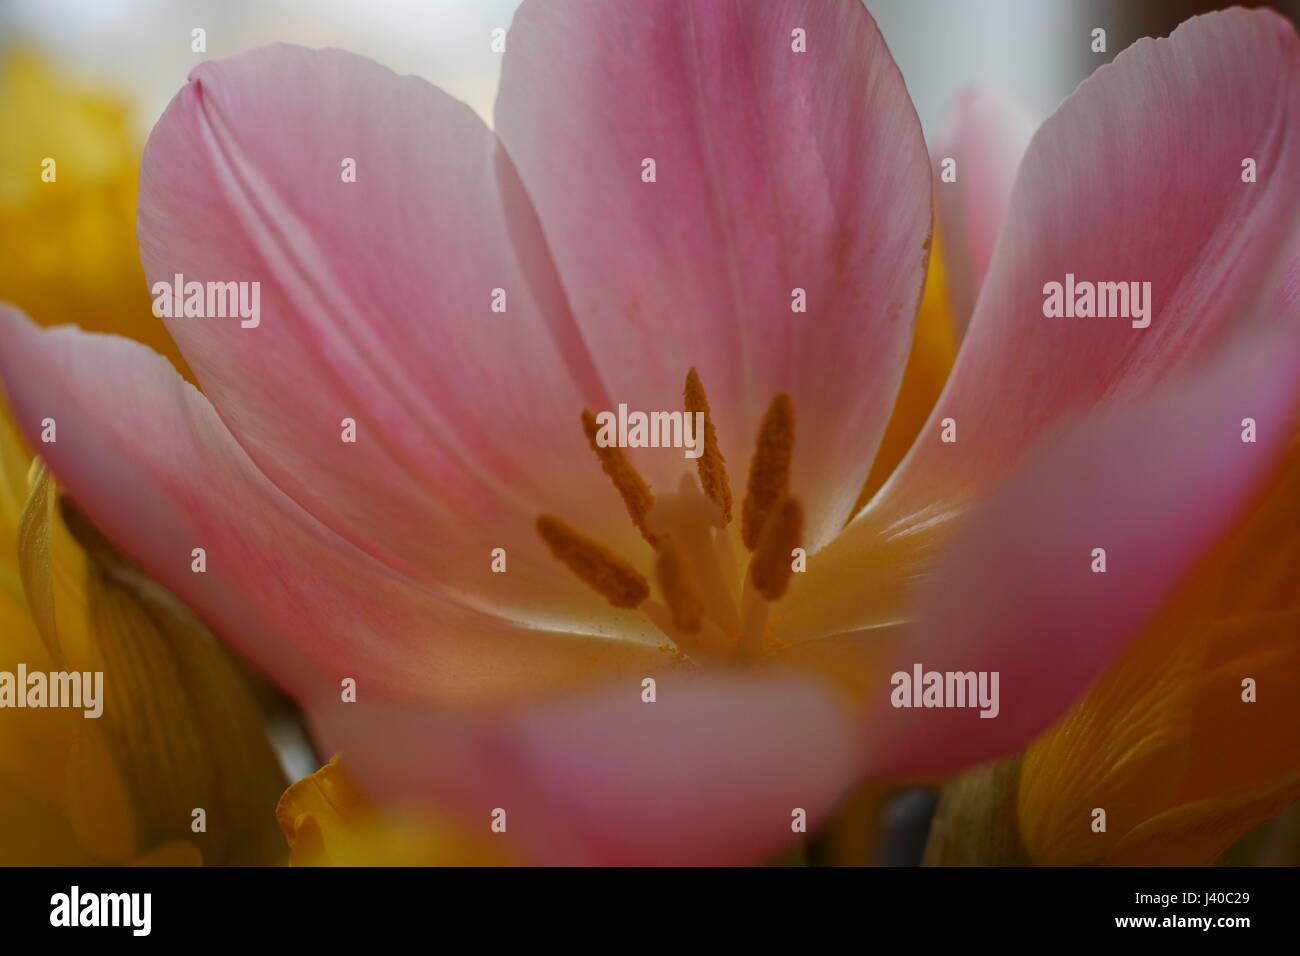 Detail of a beautiful flower - Stock Image